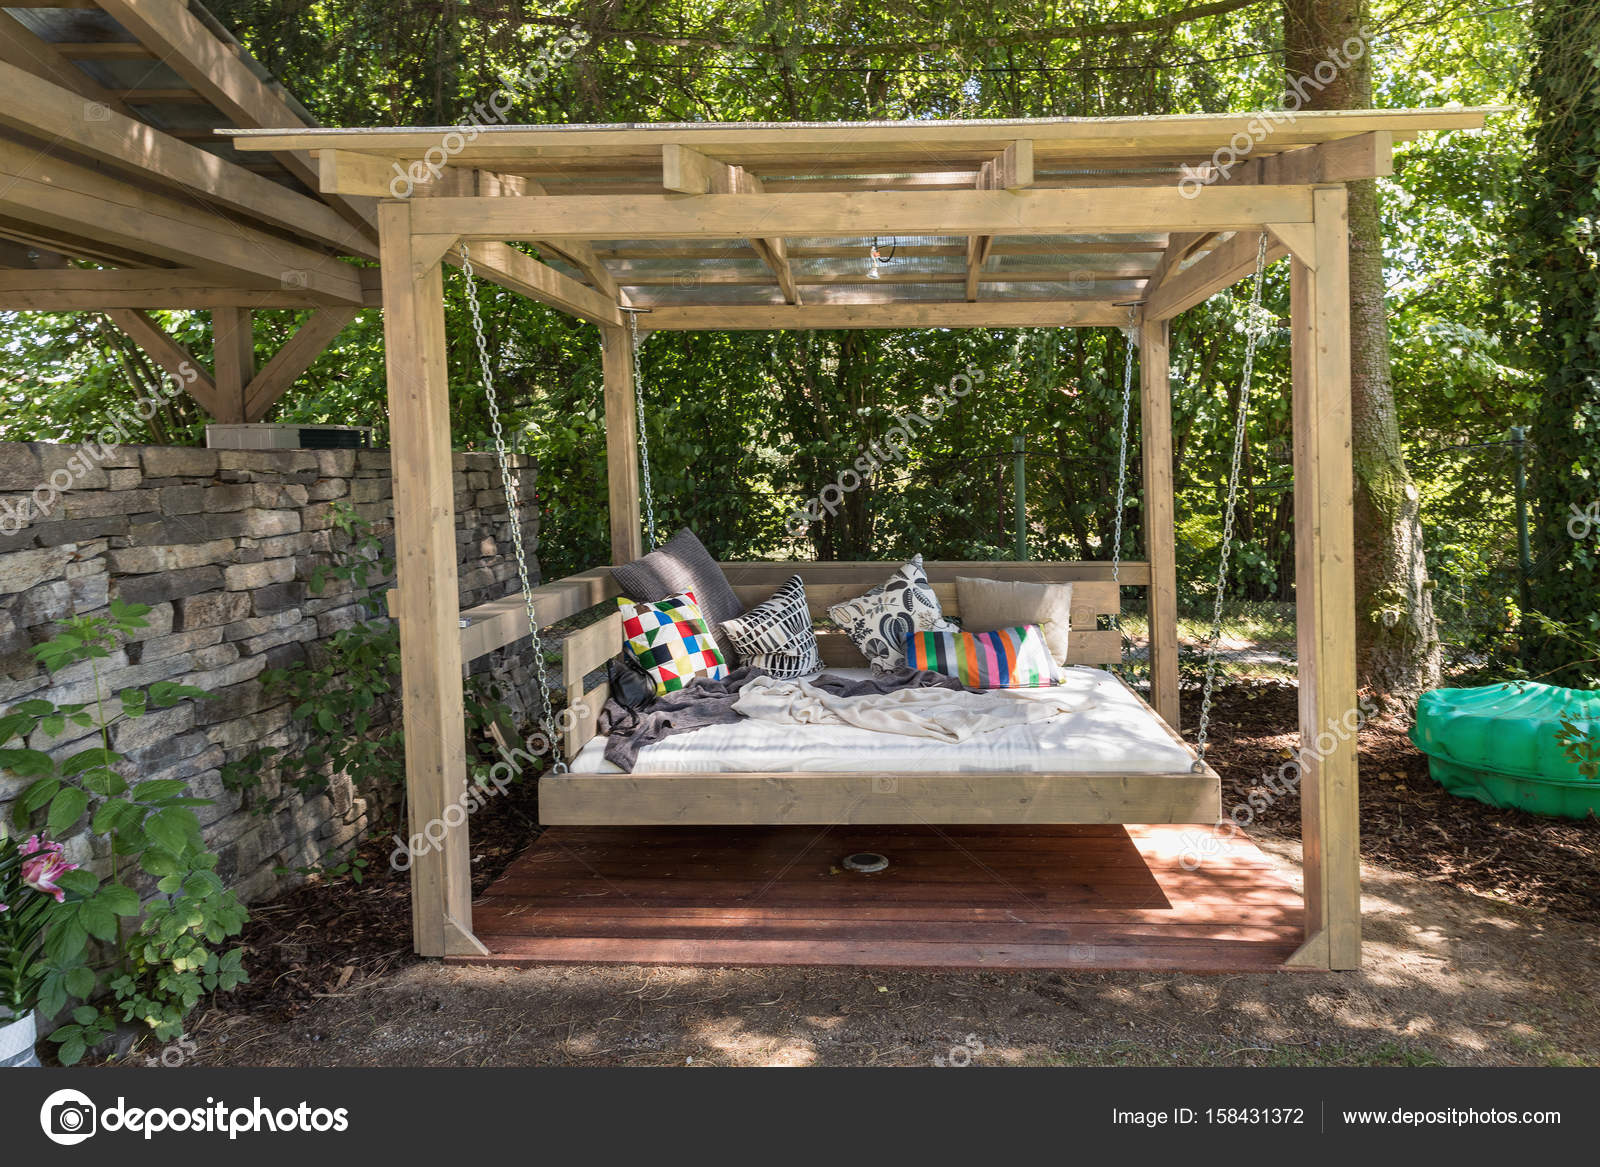 rocking bed pergola garten bett mit kissen stockfoto nadak2 158431372. Black Bedroom Furniture Sets. Home Design Ideas